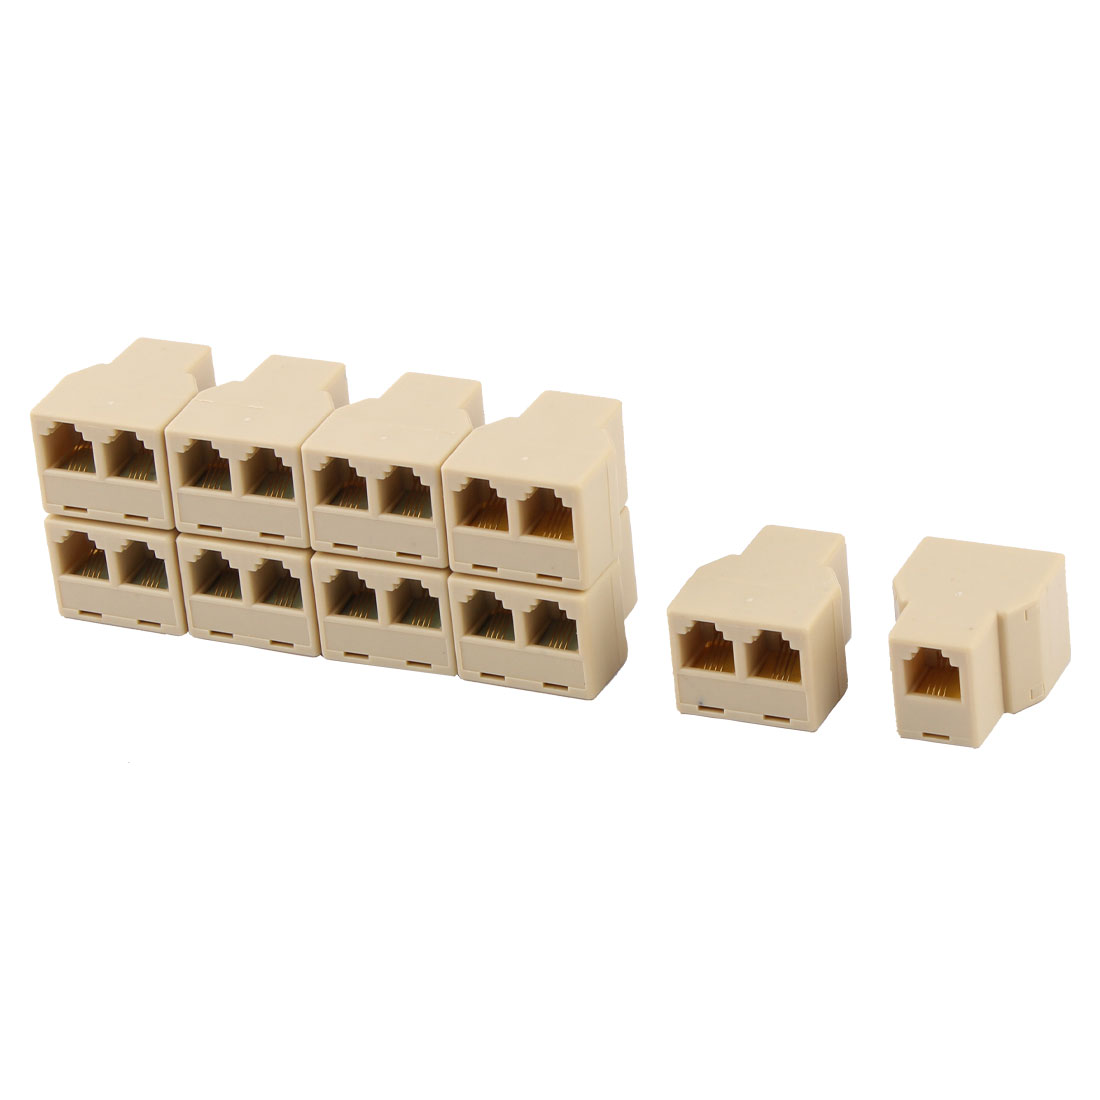 RJ11 6P4C Female to Dual Female Y Splitter Phone Jack Adapter Divider Beige 10pcs